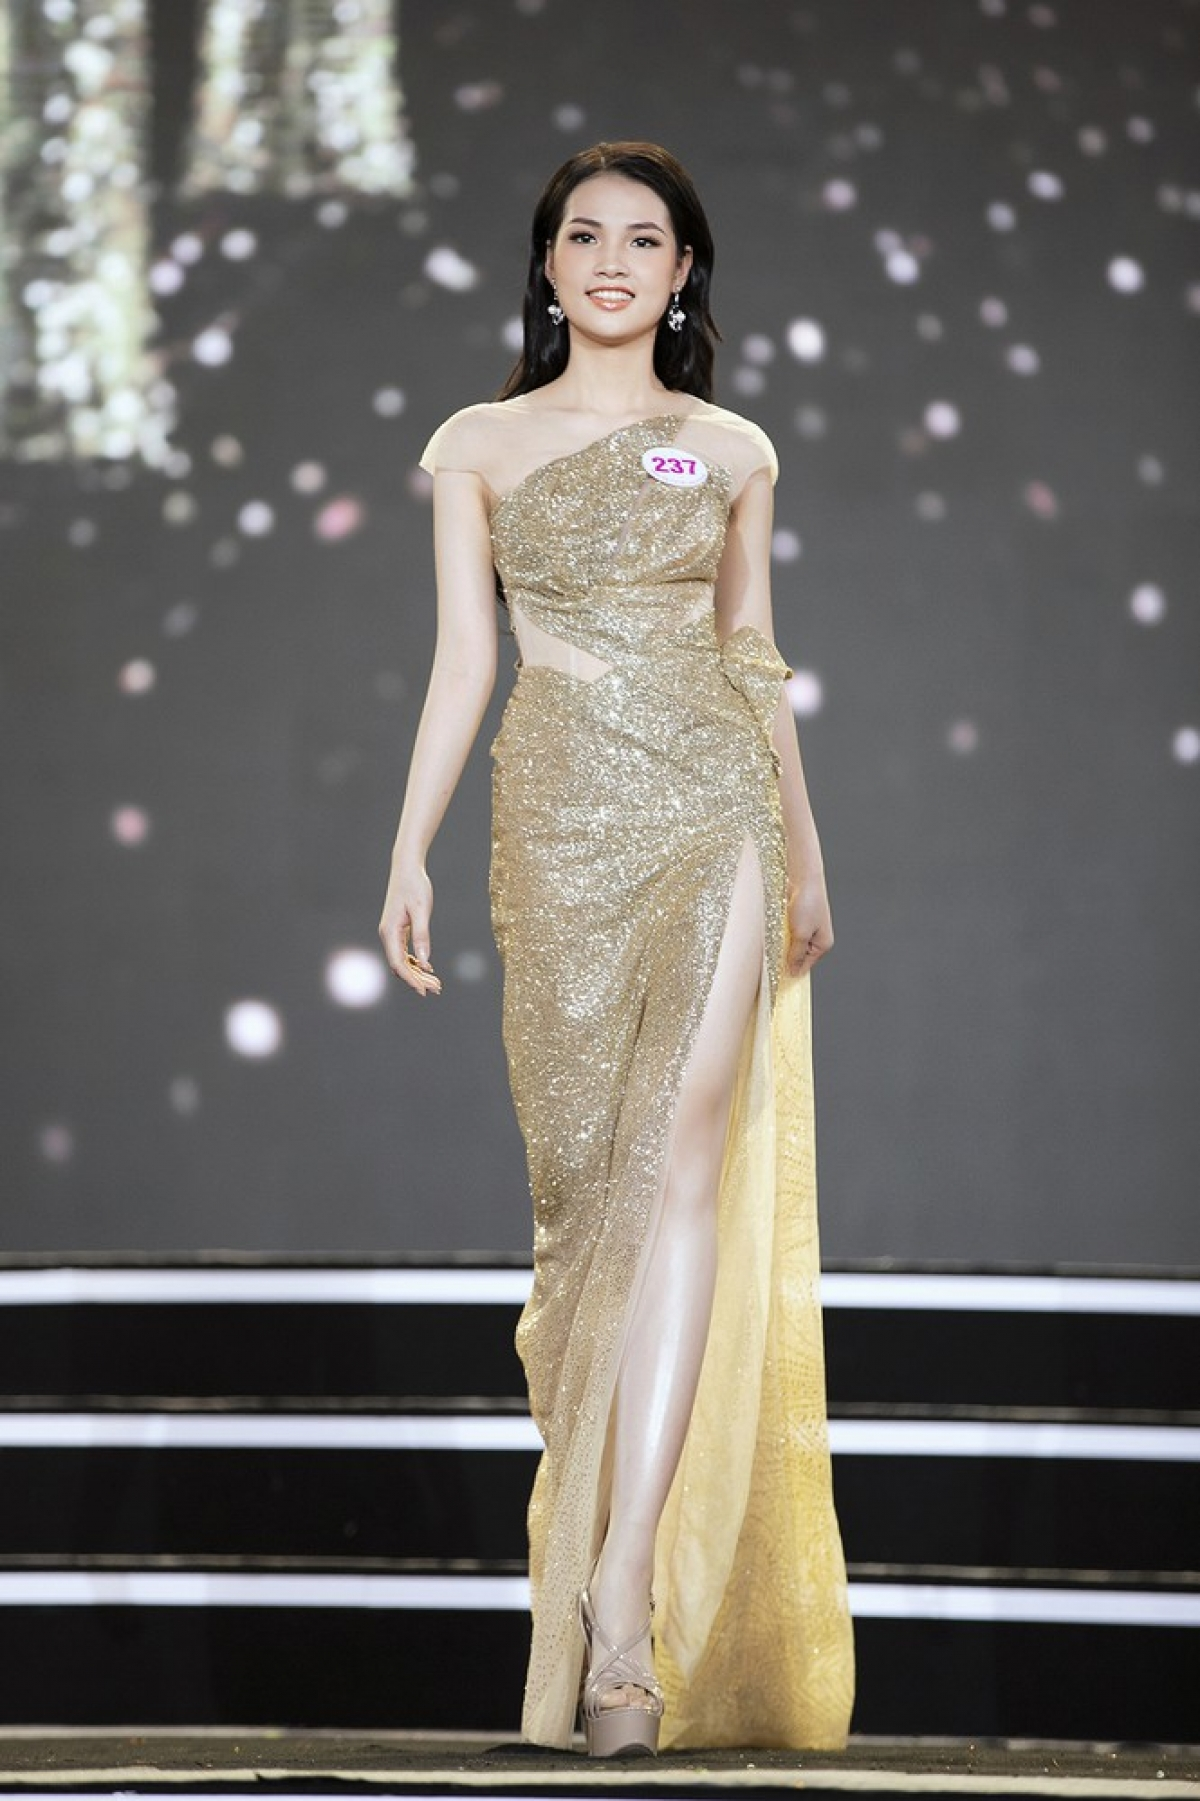 Nguyen Khanh Ly hails from Phu Tho province and is 1.68 metres tall with measurements of 80-62–88.